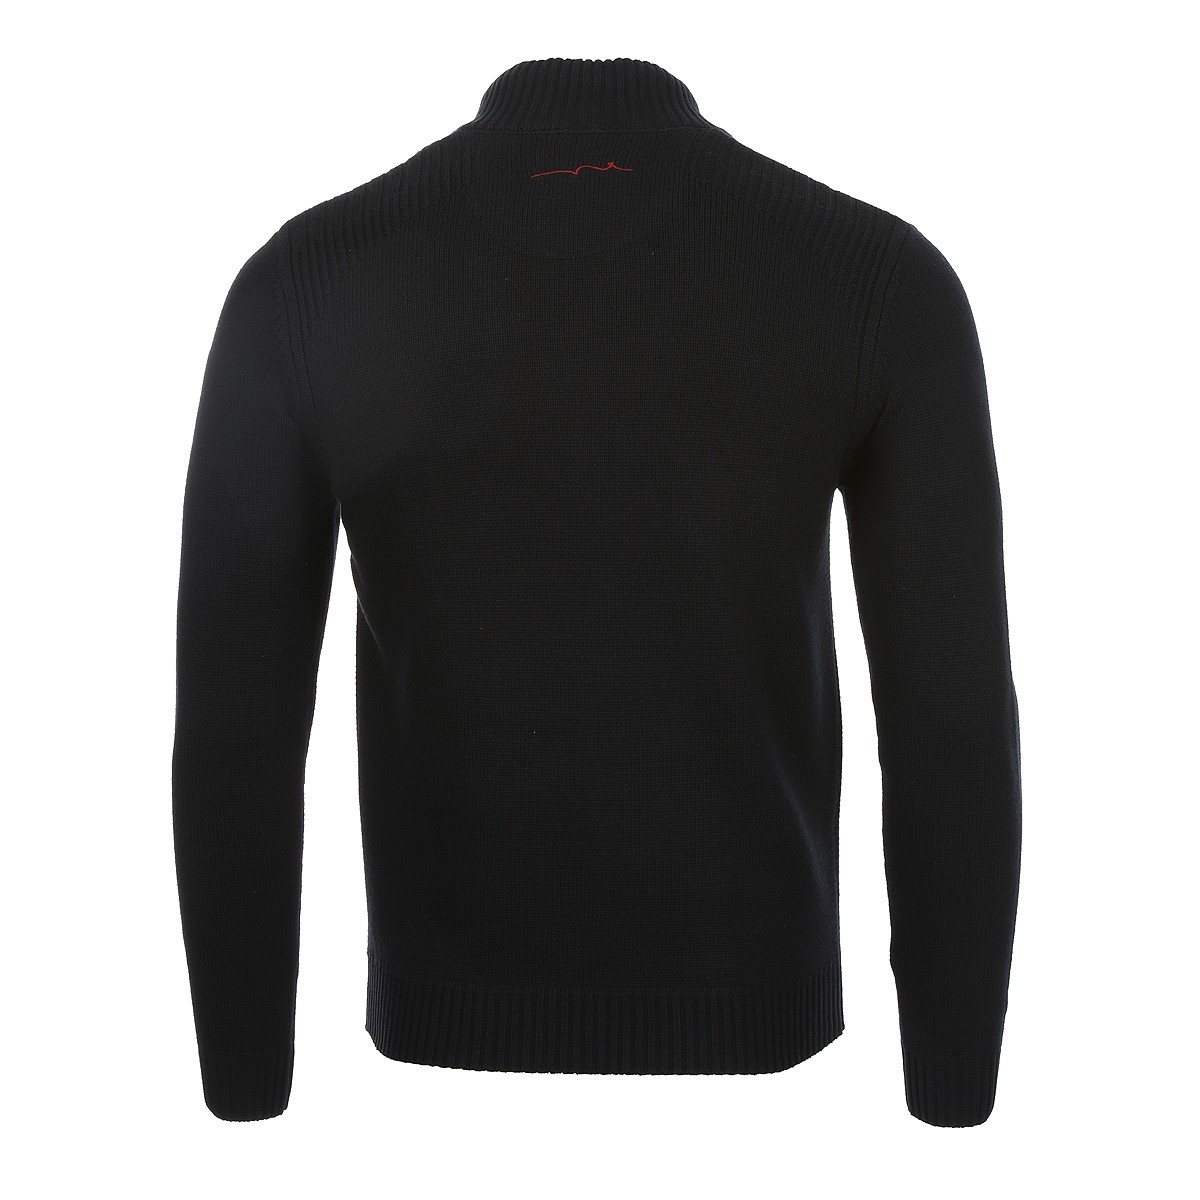 Pull homme noir TEDDY SMITH